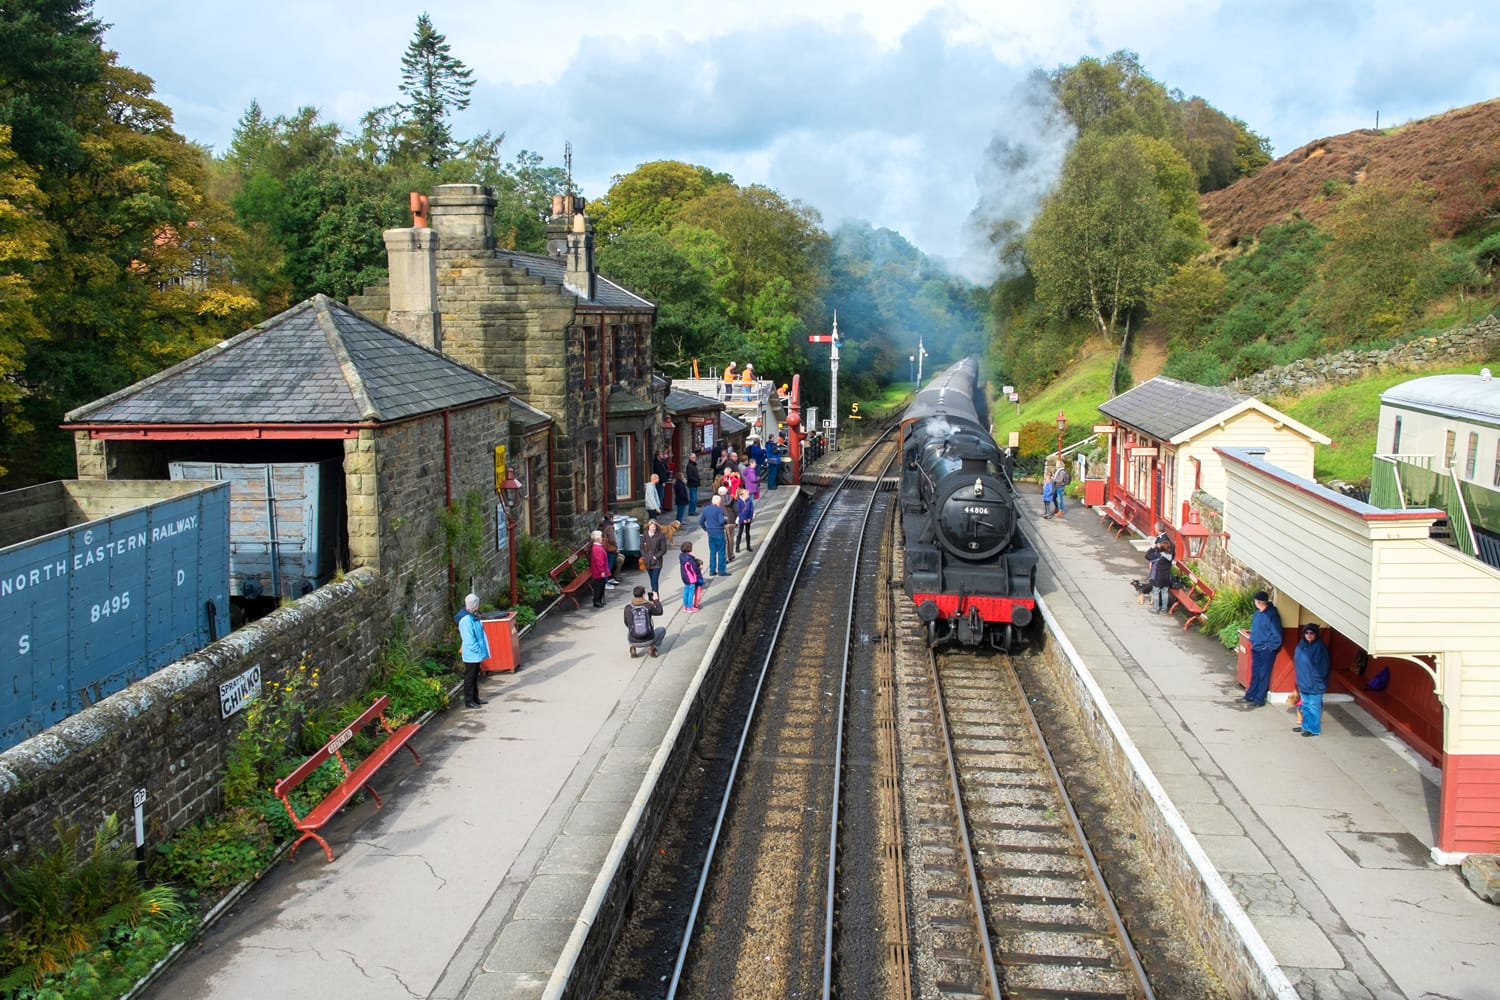 Goathland Station in UK